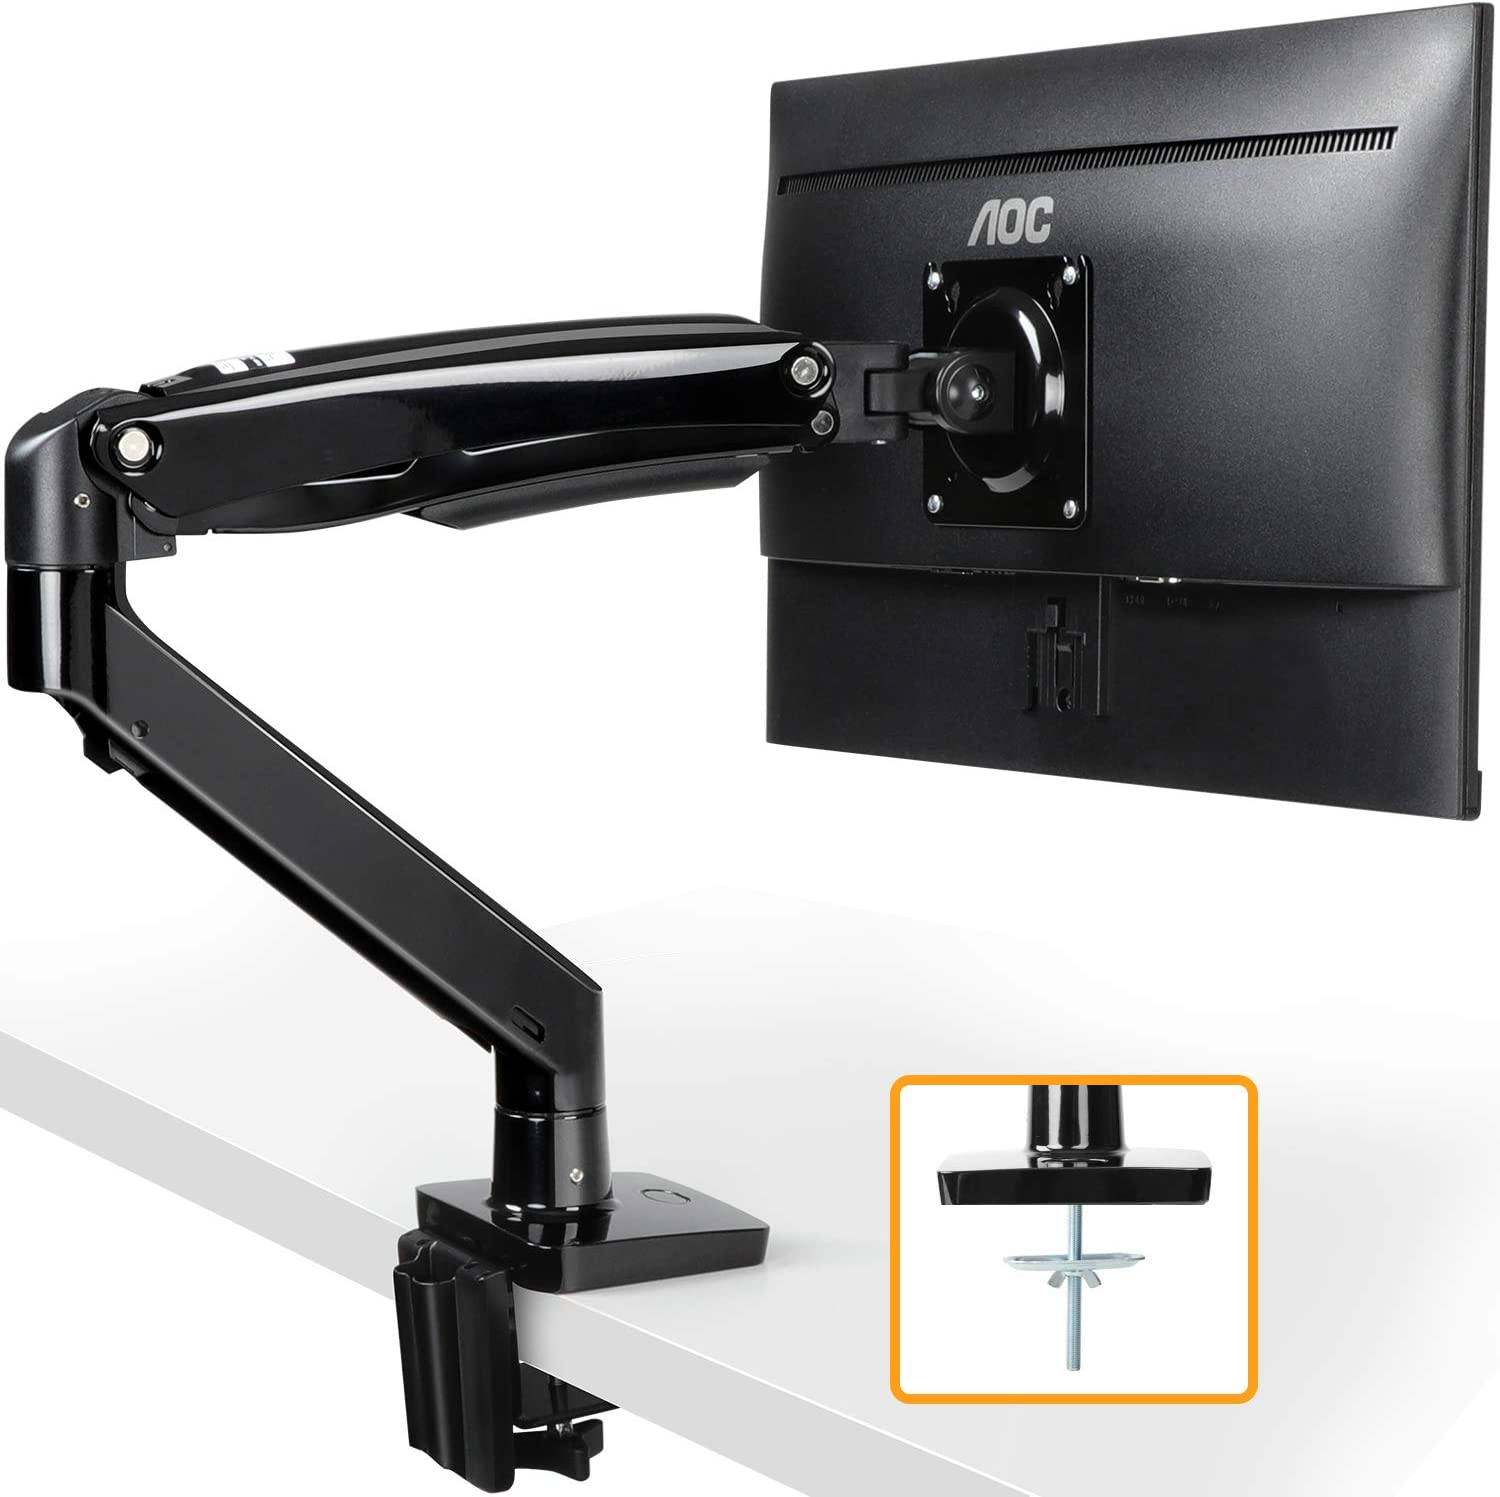 "ErGear 22-35"" Premium Single Monitor Stand Mount w/USB, Ultrawide Computer Screen Desk Mount w/Full Motion Gas Spring Arm, Height/Tilt/Swivel/Rotation Adjustable, Holds from 6.6lbs to 26.5lbs"